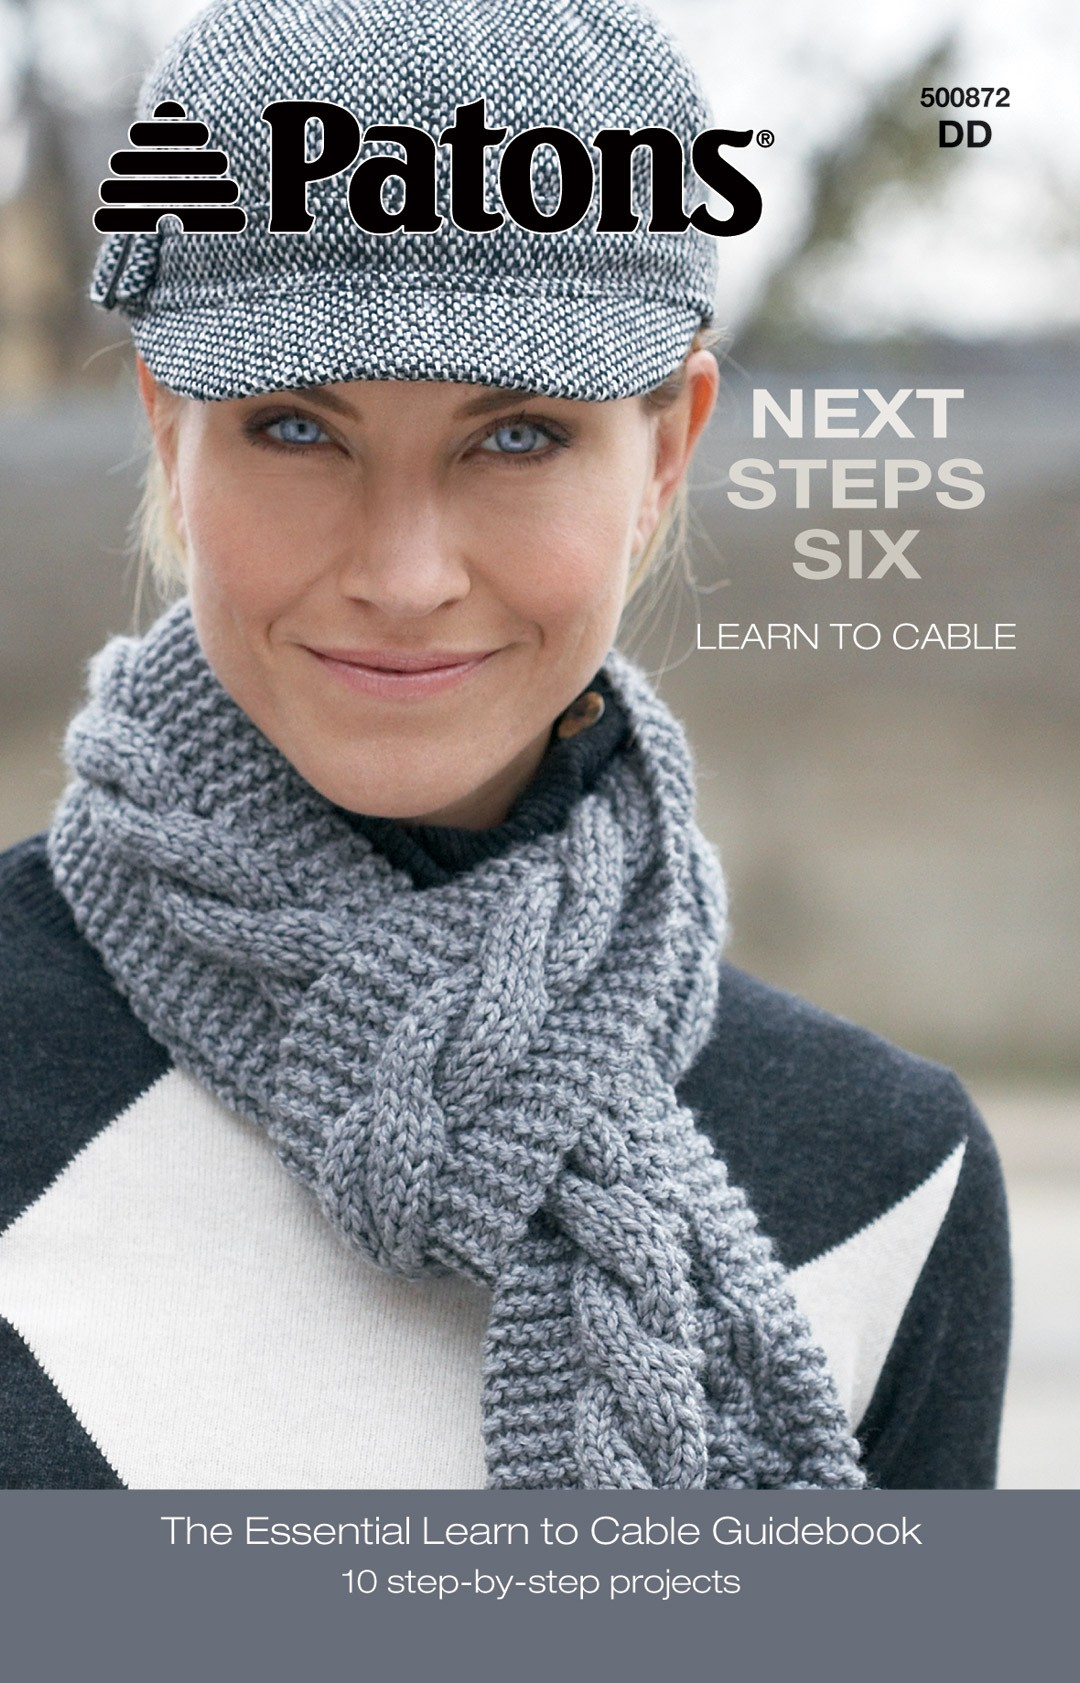 Next Steps Six - Learn to Cable